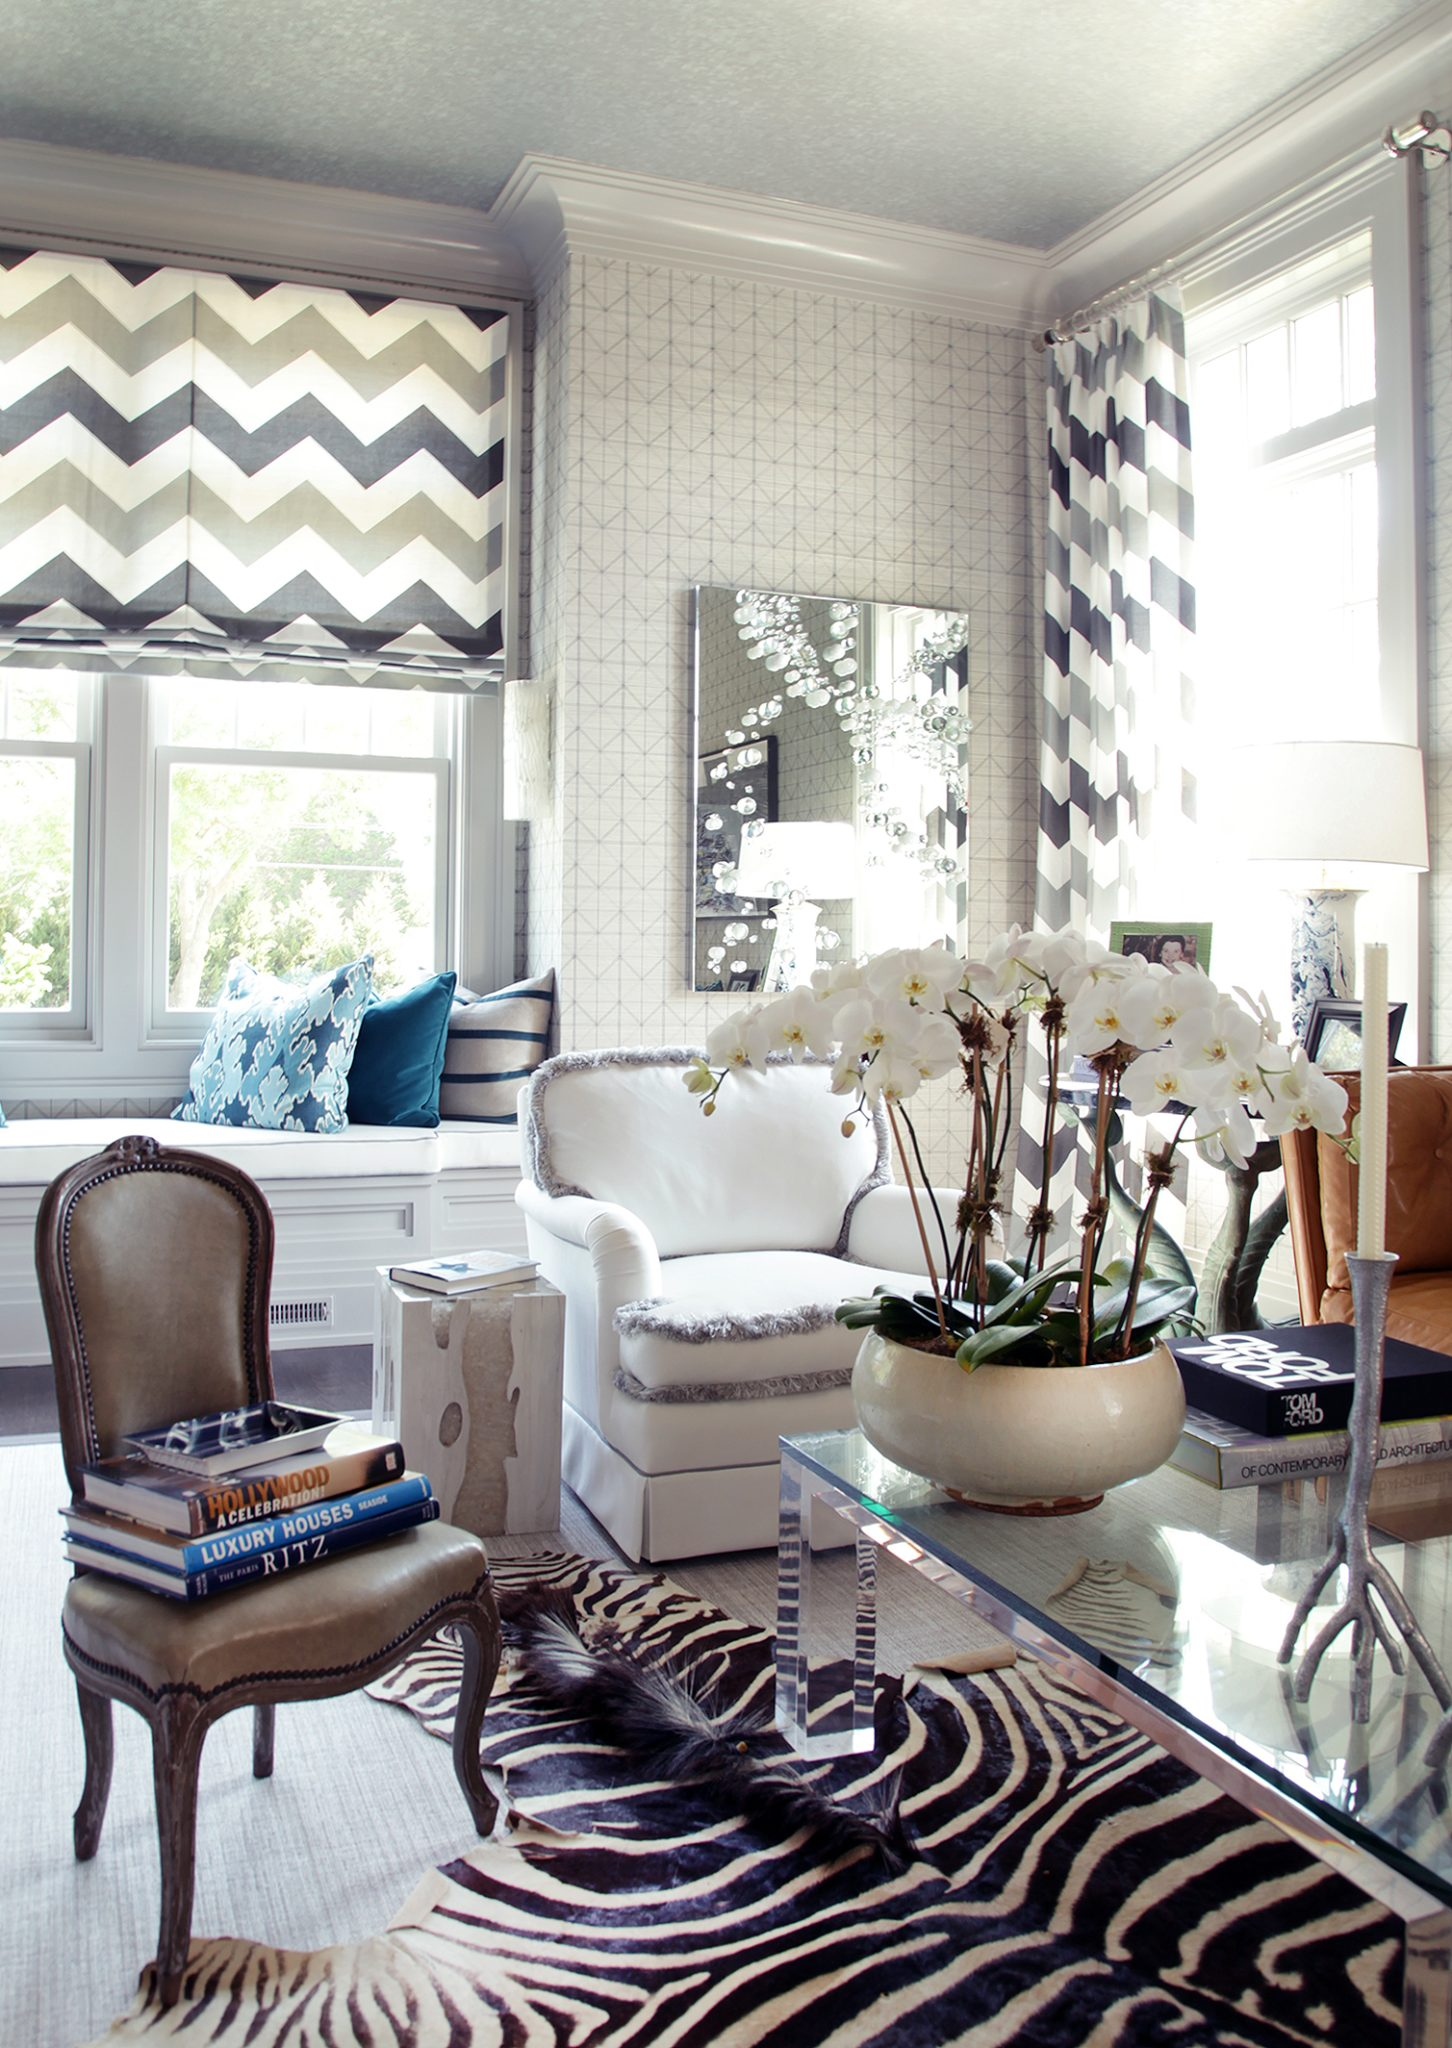 The Hamptons Designer Showhouse- library room with zebra rug, chevron curtains by Greg McKenzie Designs